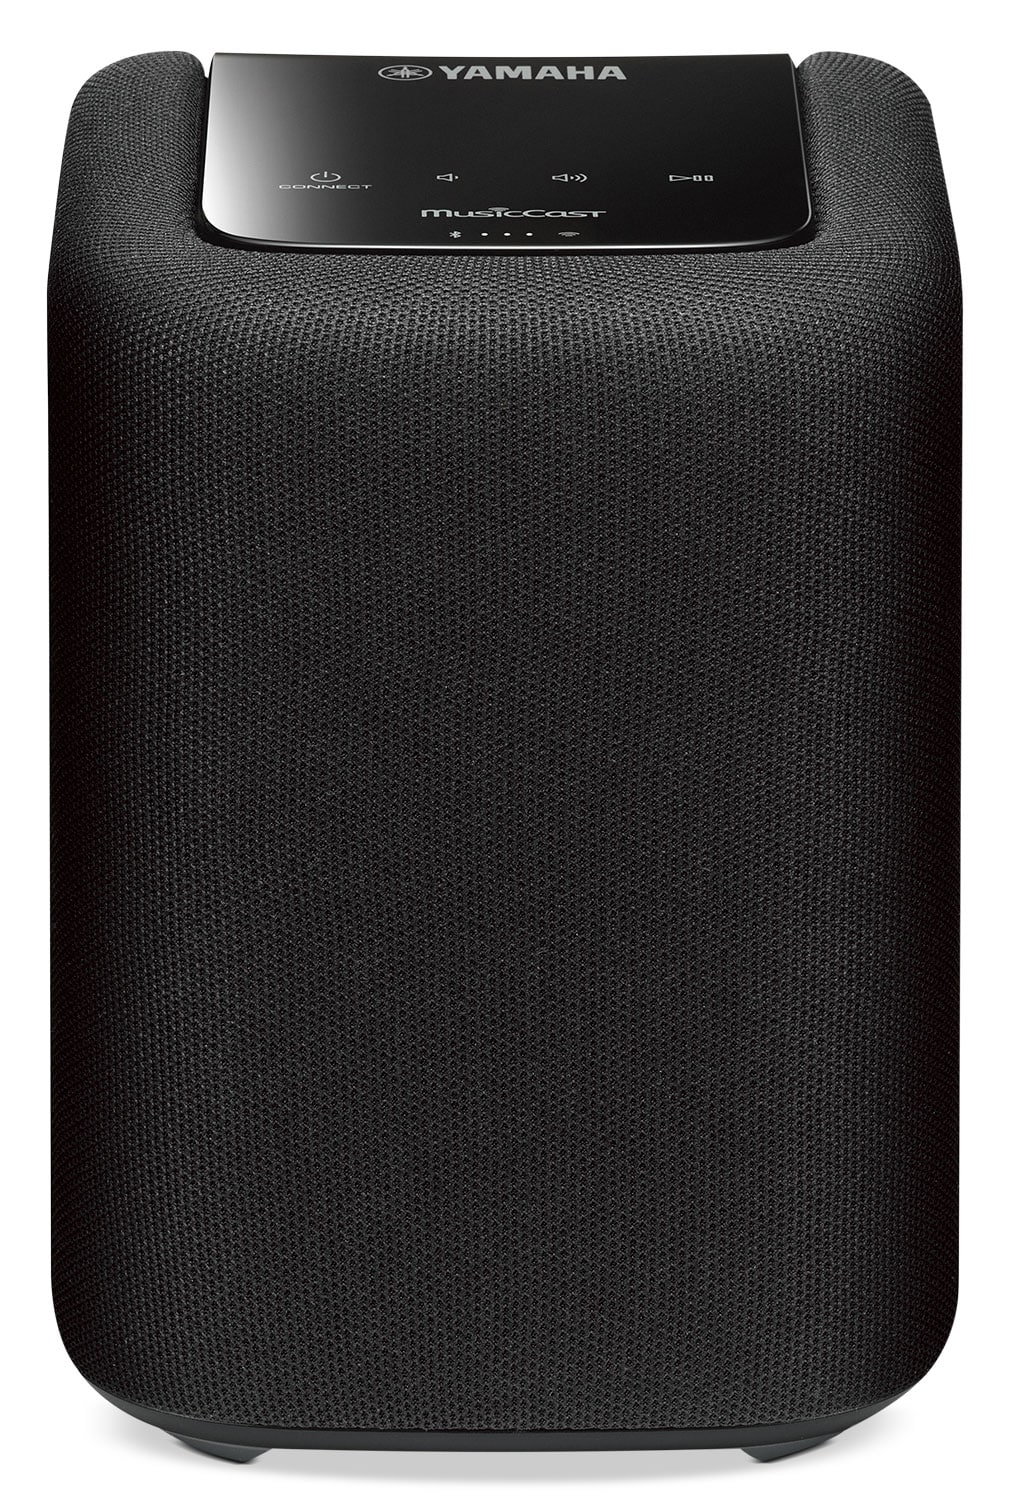 Sound Systems - Yamaha WX-010 Wireless Streaming Speaker – Black